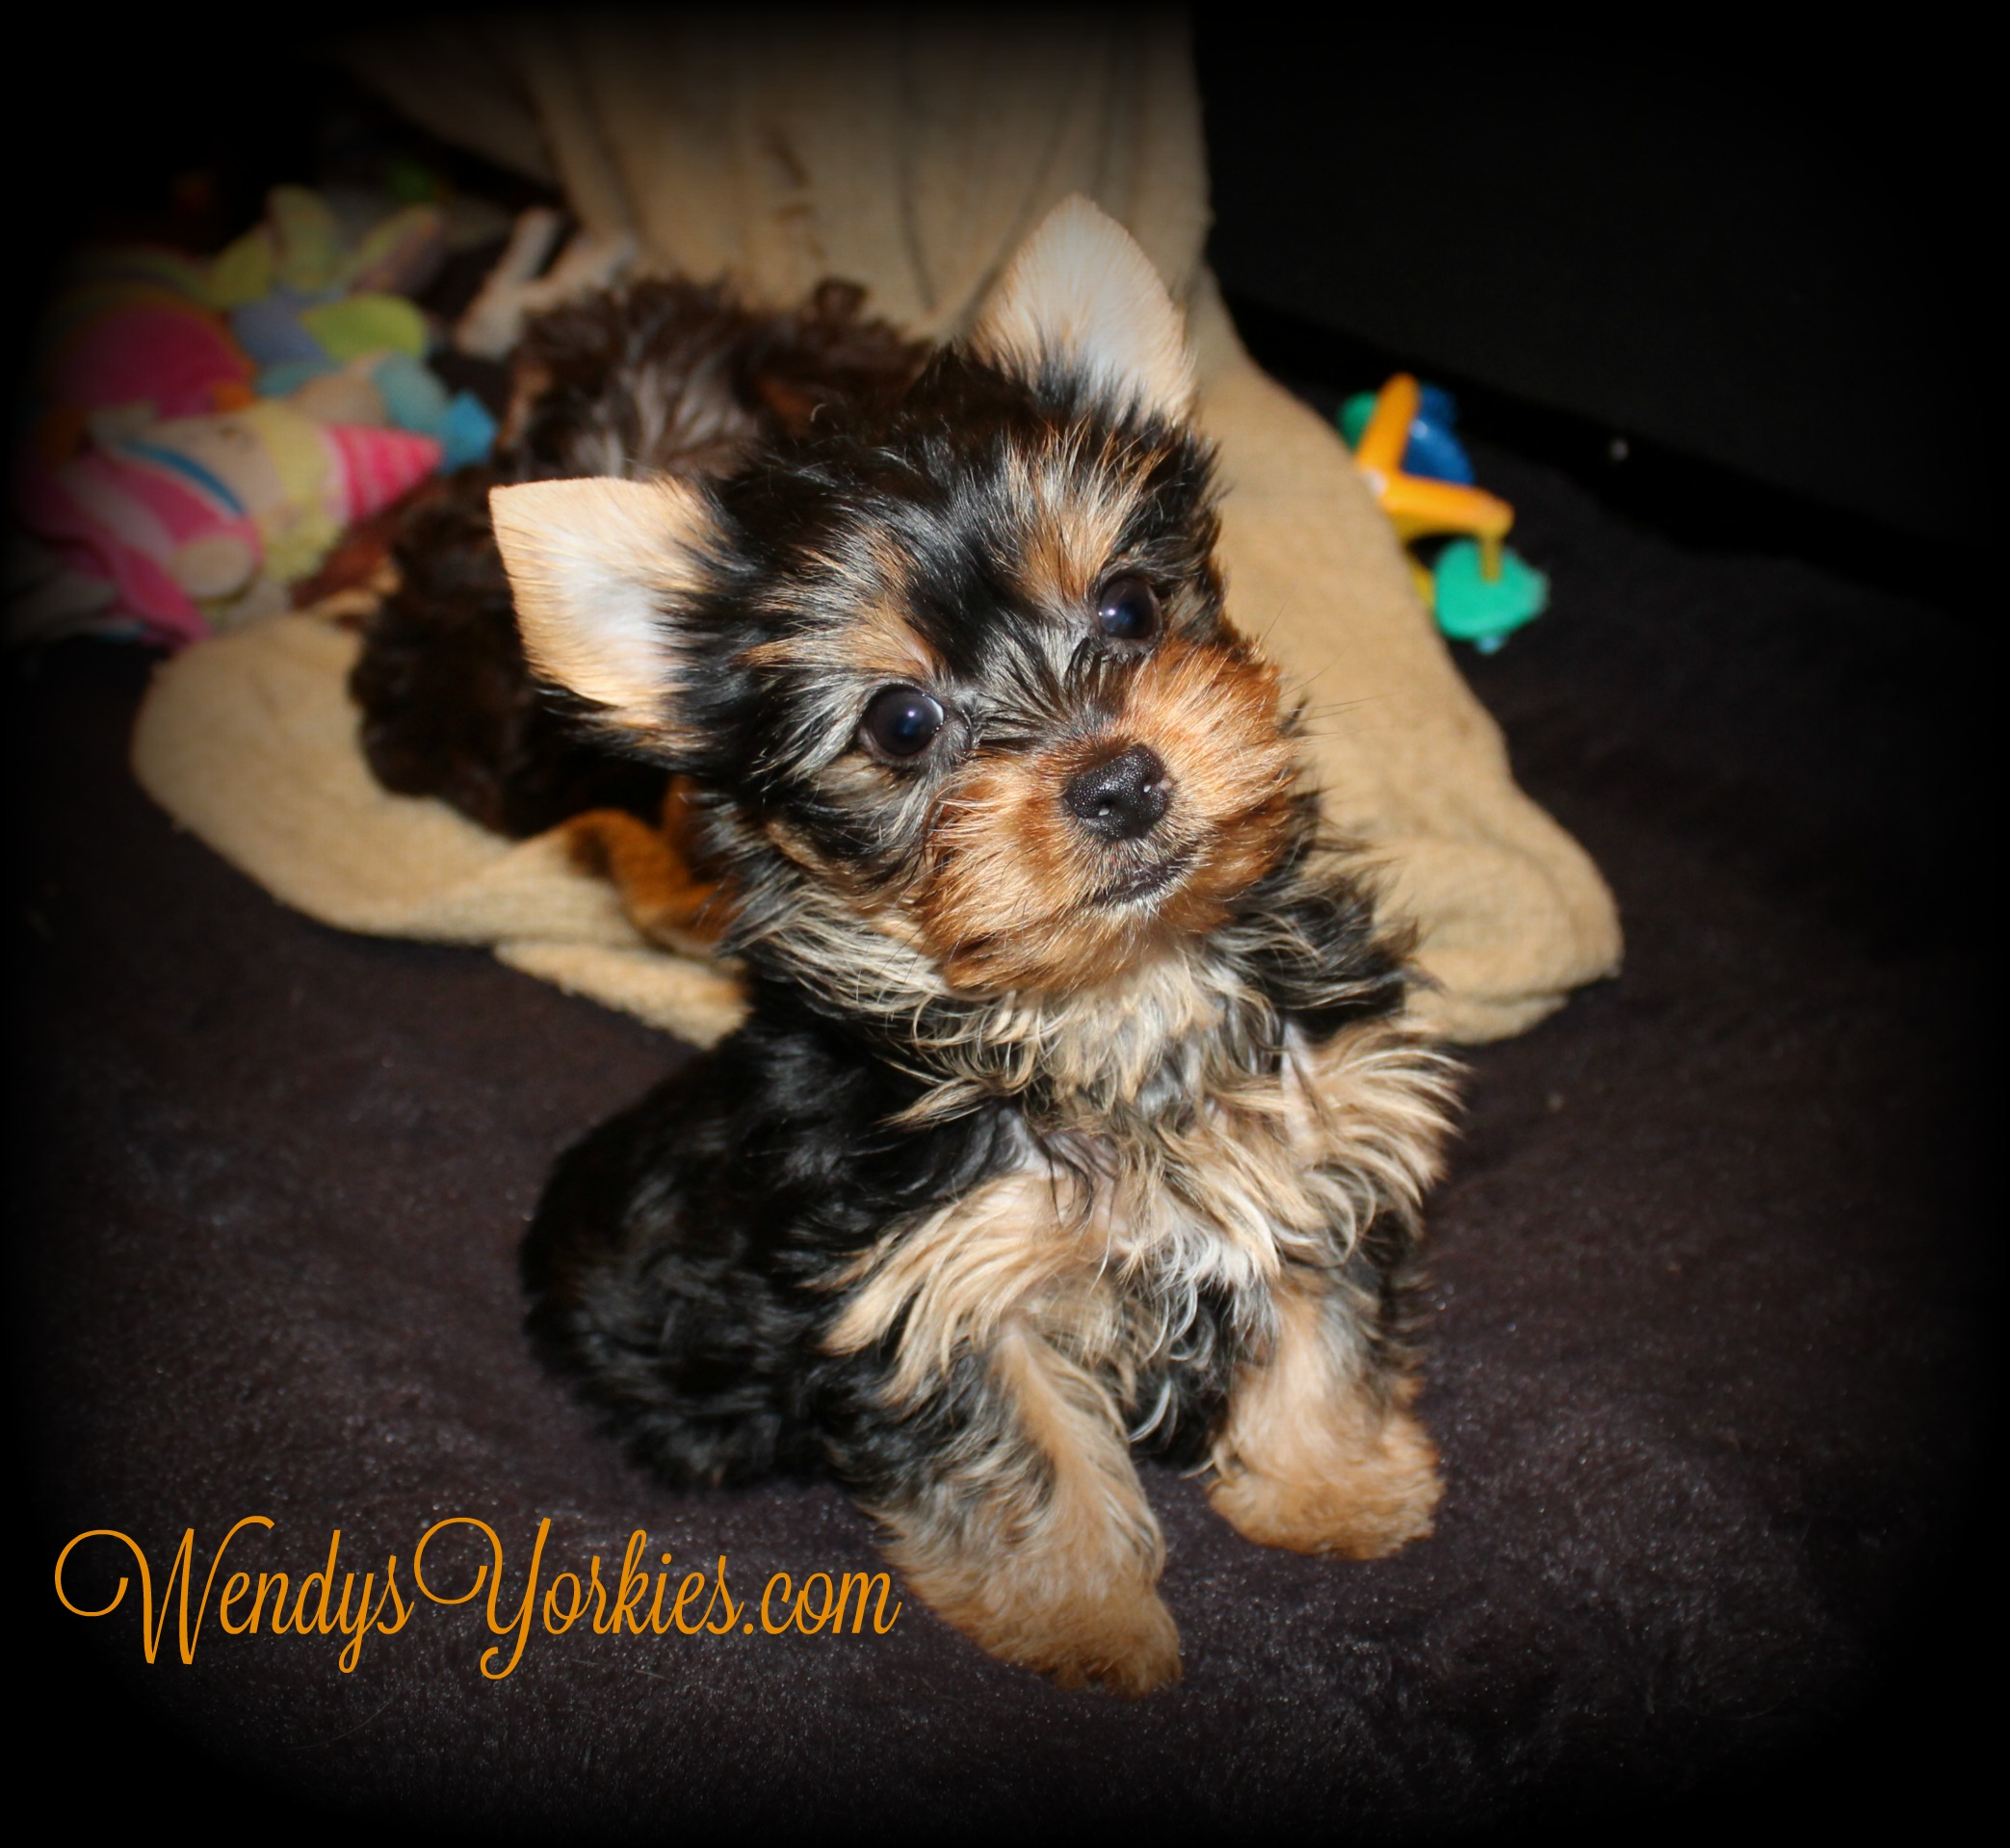 Cute Yorkie puppy for sale, WendysYorkies.com, Anna m1